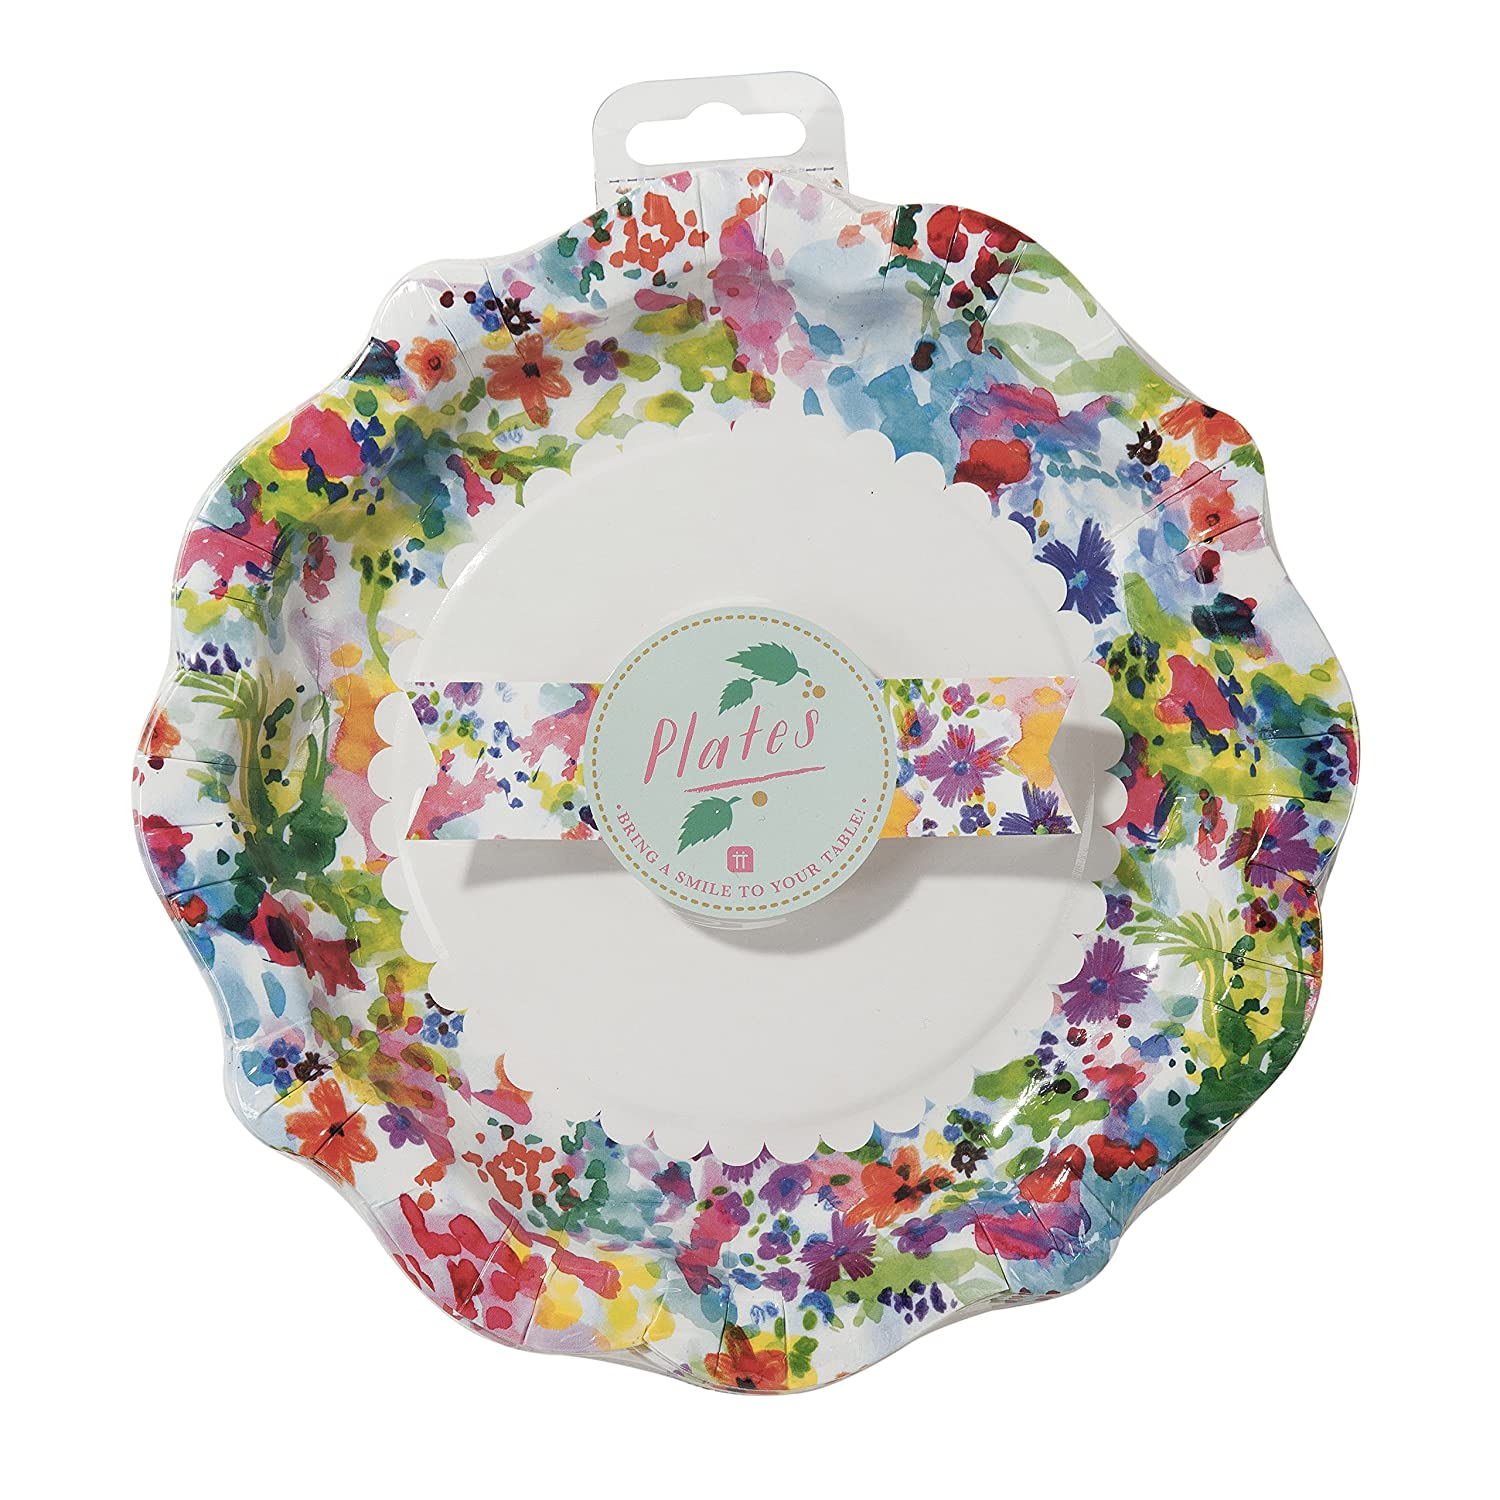 Amazon.com Talking Tables Floral Fiesta Large Colorful Disposable Plates 12 count for a Tea Party Birthday or Luau Party Kitchen \u0026 Dining  sc 1 st  Amazon.com & Amazon.com: Talking Tables Floral Fiesta Large Colorful Disposable ...